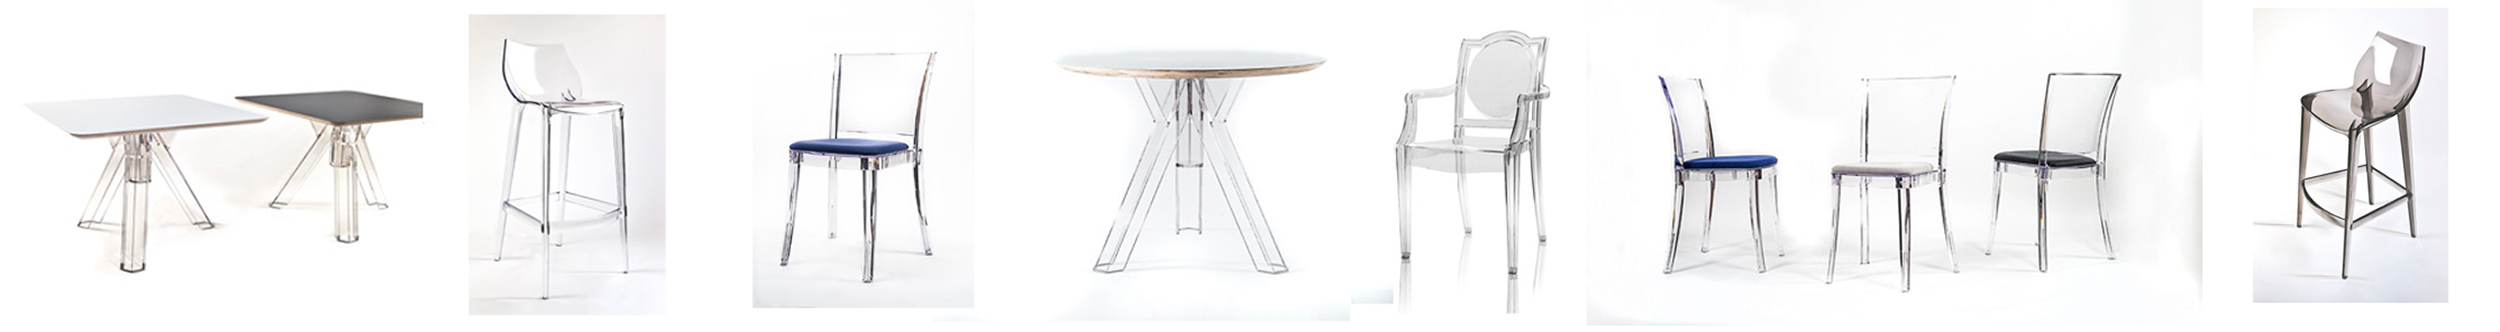 Bellelli Design - Oval Tables